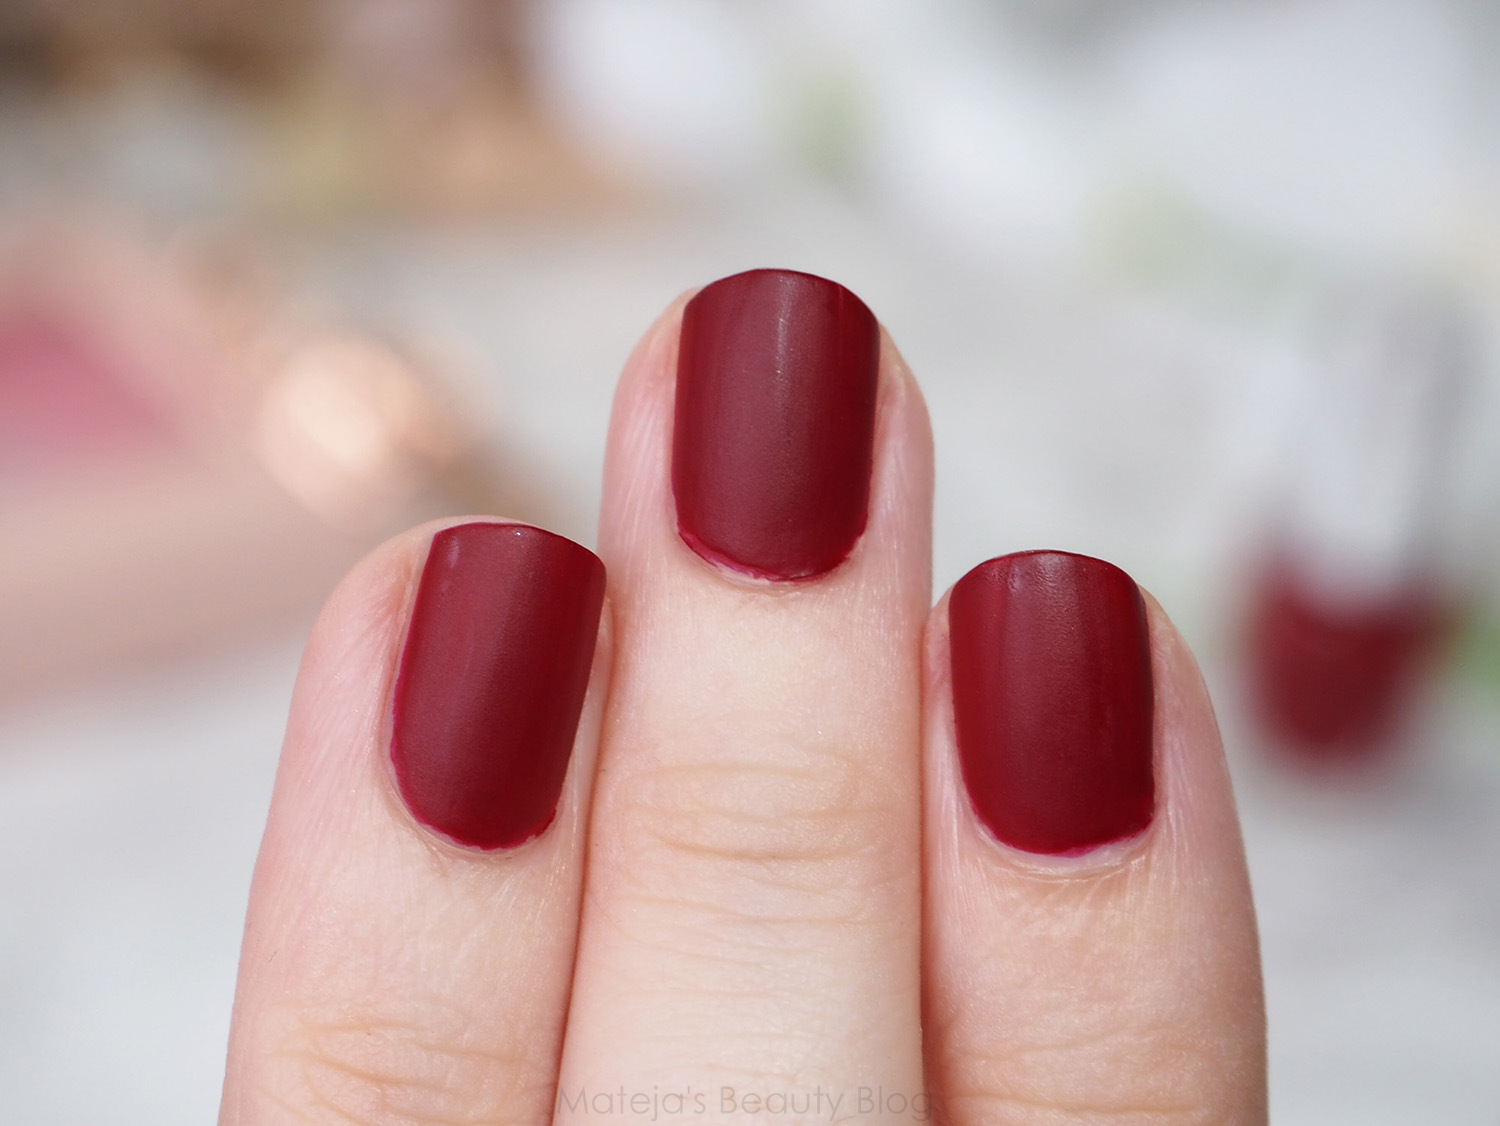 I Don T Own Many Matte Nail Polishes M More A Traditionalist When It Comes To Colours But Liking This One